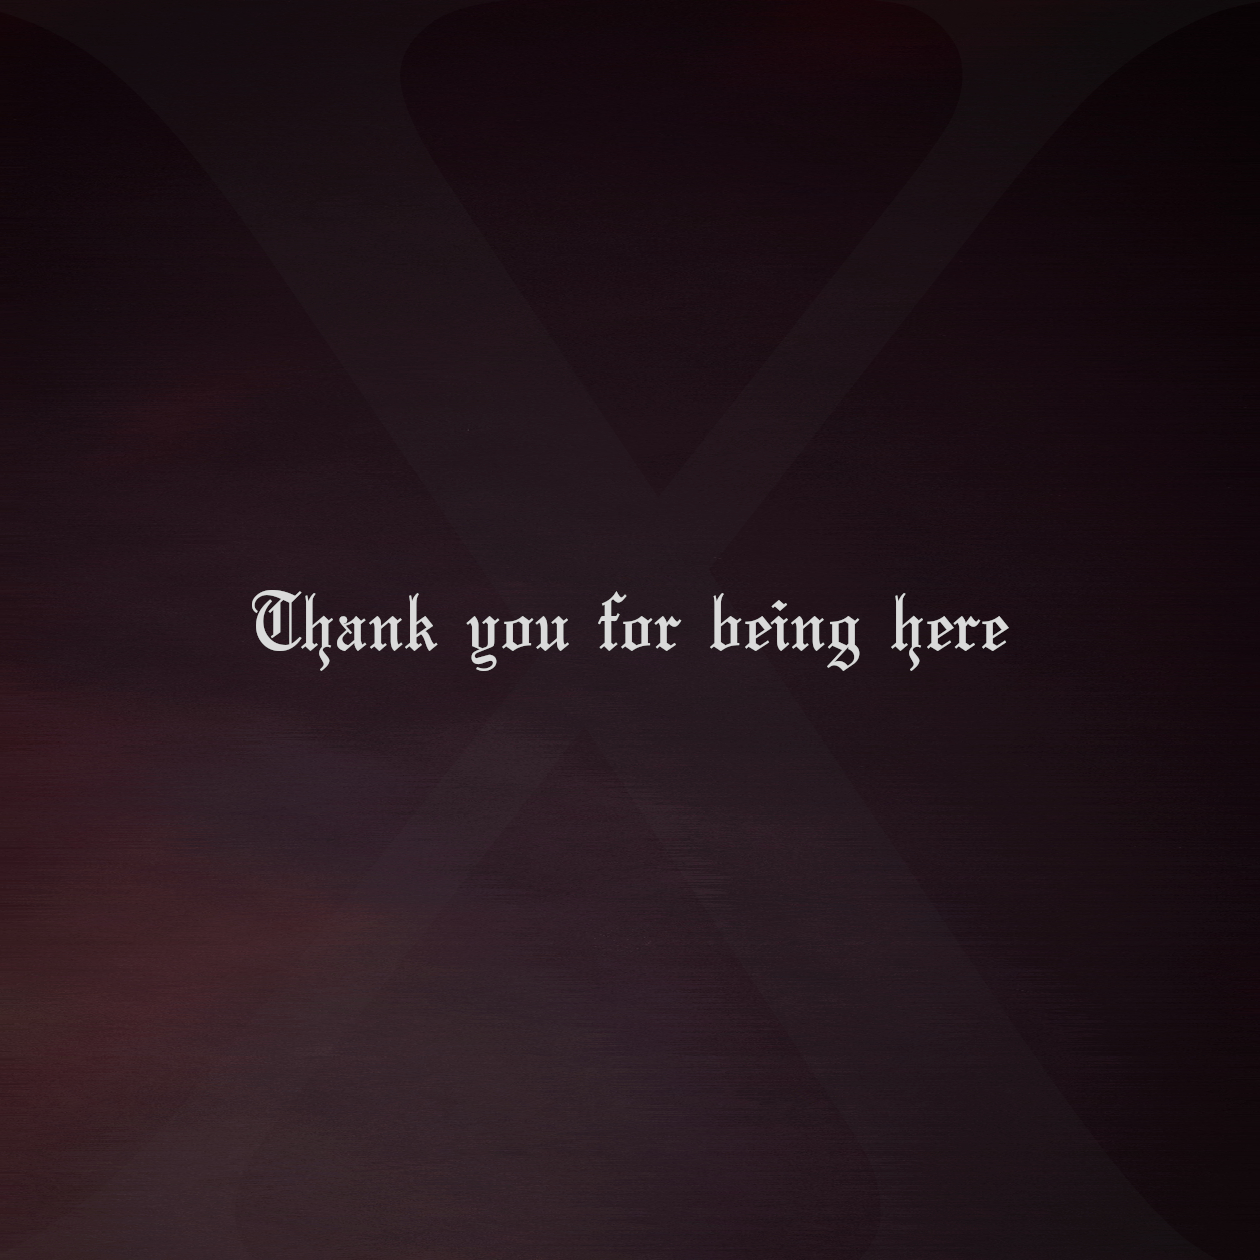 Thank you for being here